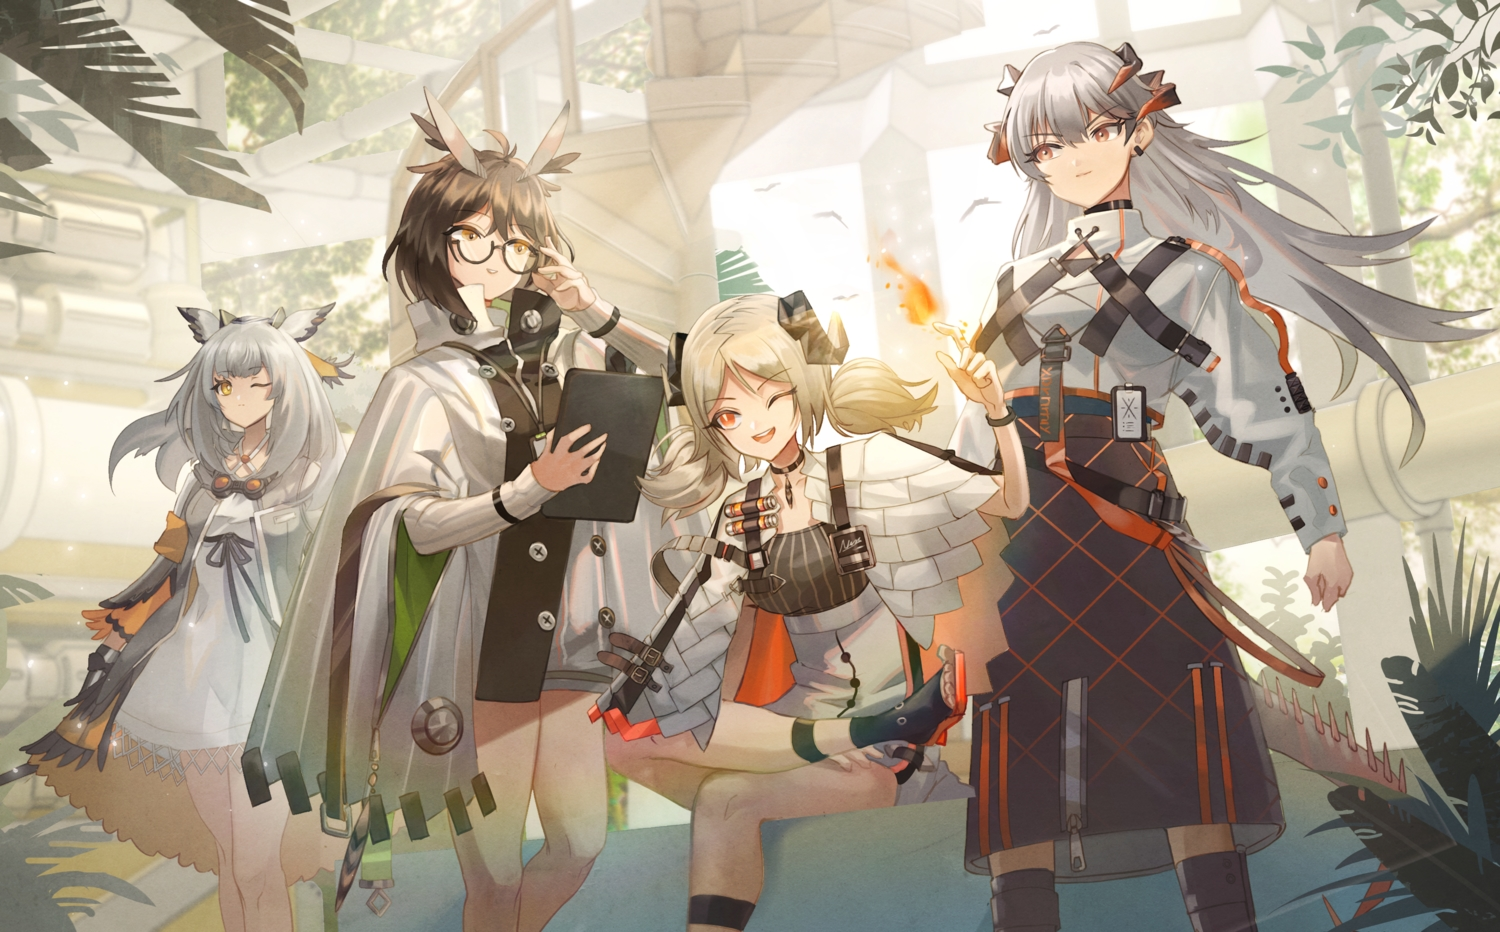 animal_ears arknights glasses group horns ifrit_(arknights) long_hair o-sd! ptilopsis_(arknights) saria_(arknights) silence_(arknights) twintails